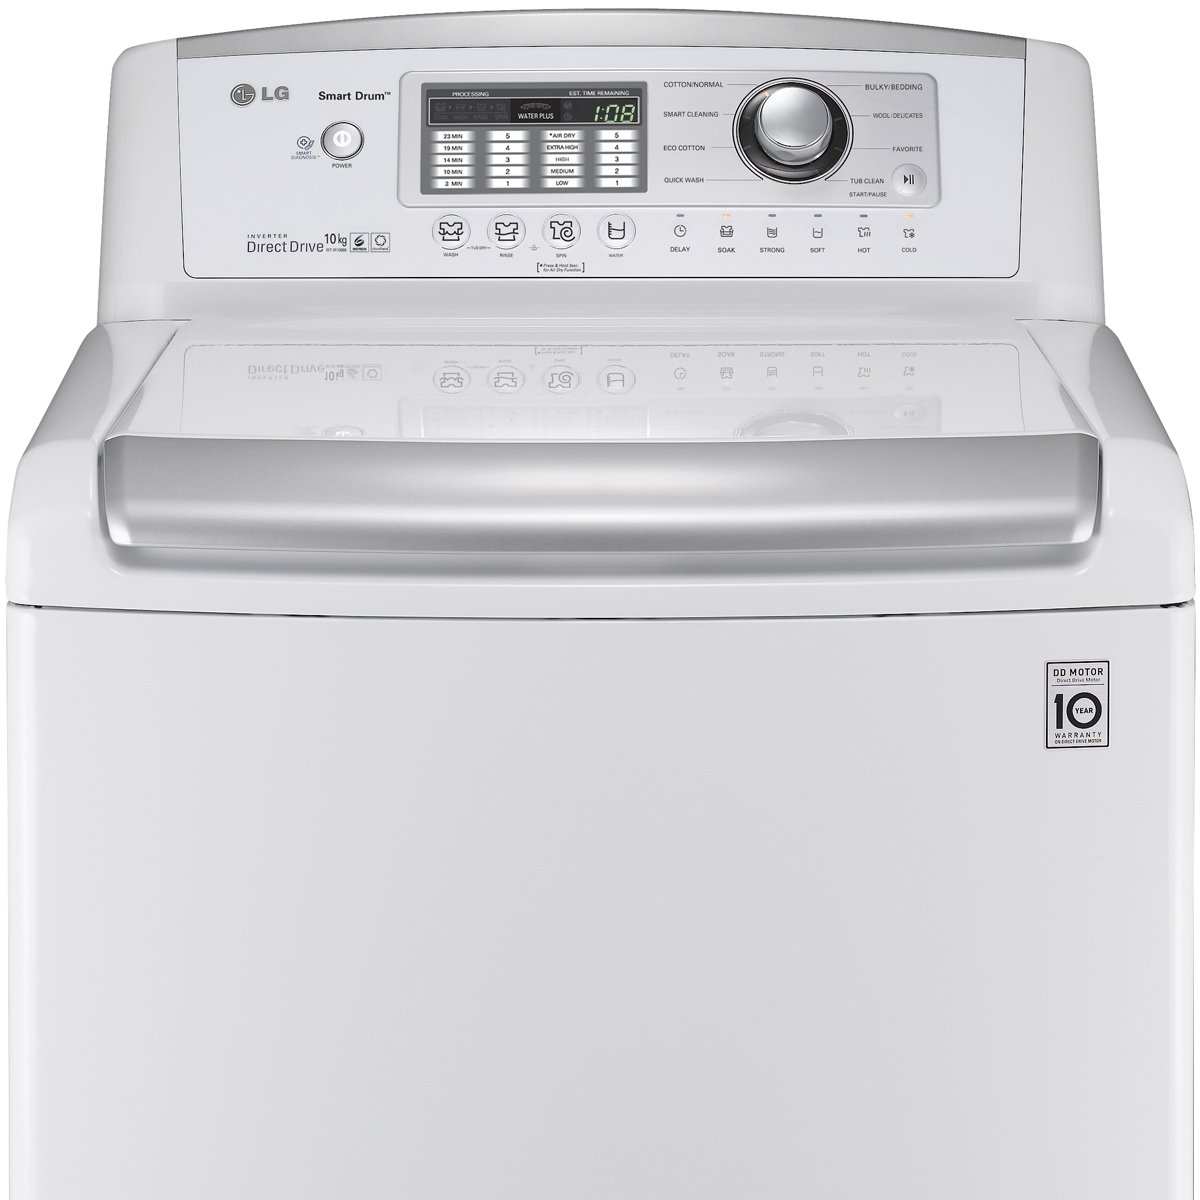 top load washing machine clipart. lg wtr10686 10kg top load washing machine clipart t